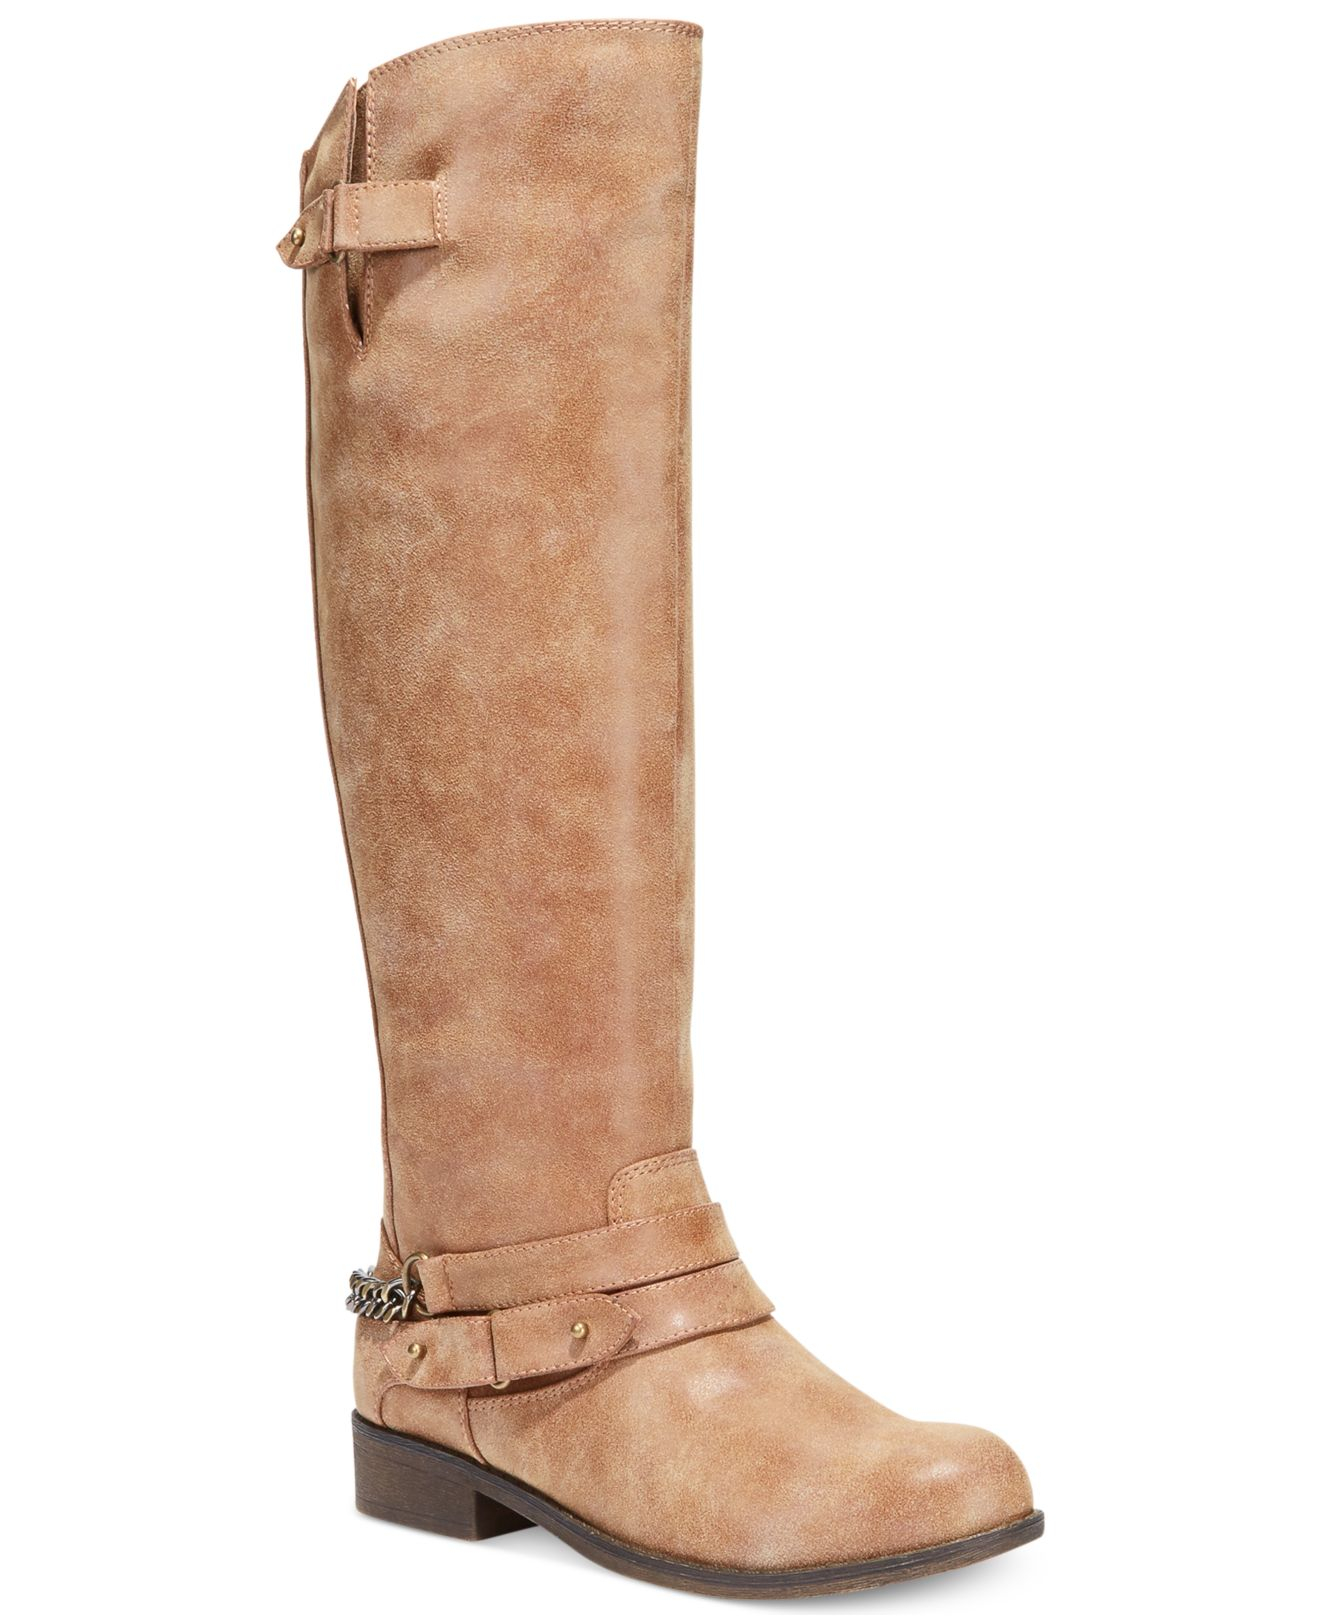 Lyst Madden Girl Caanyon Tall Shaft Riding Boots In Brown